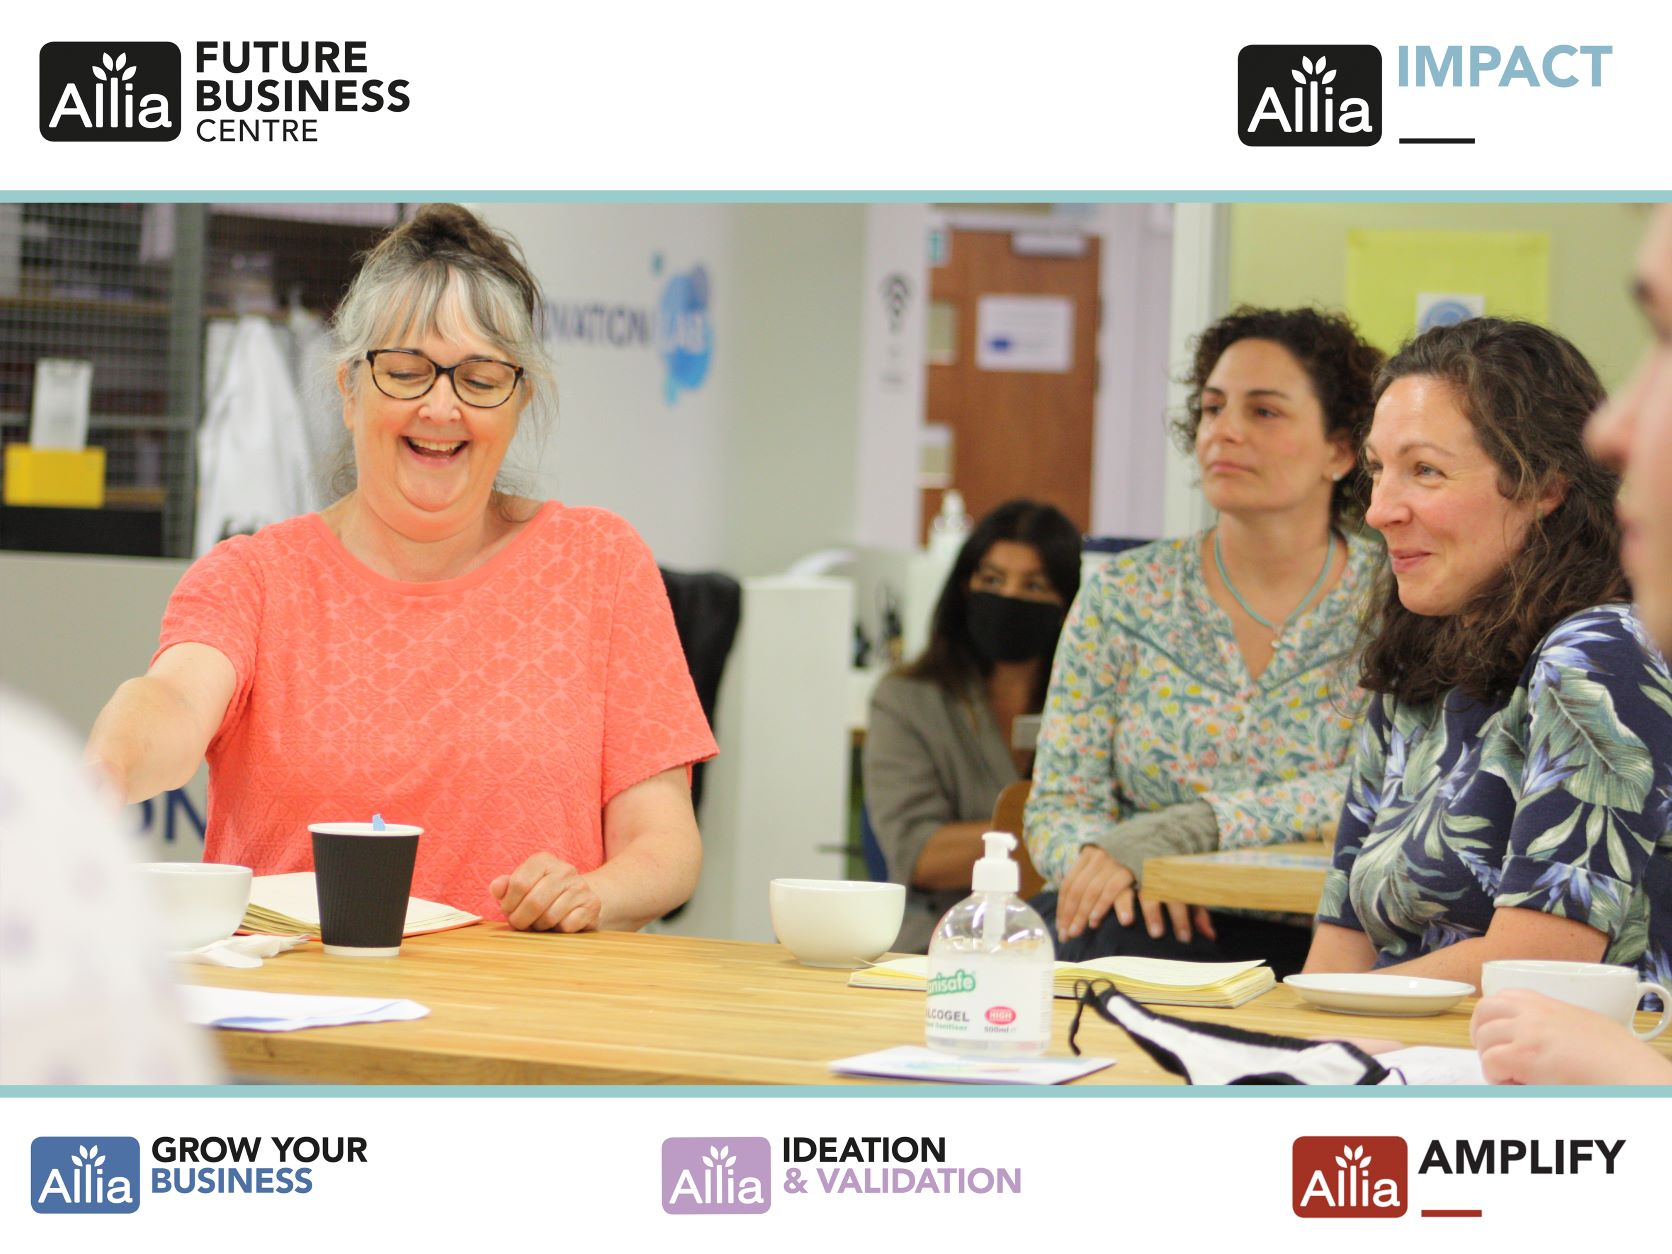 Check out Allia's programmes launching this summer!